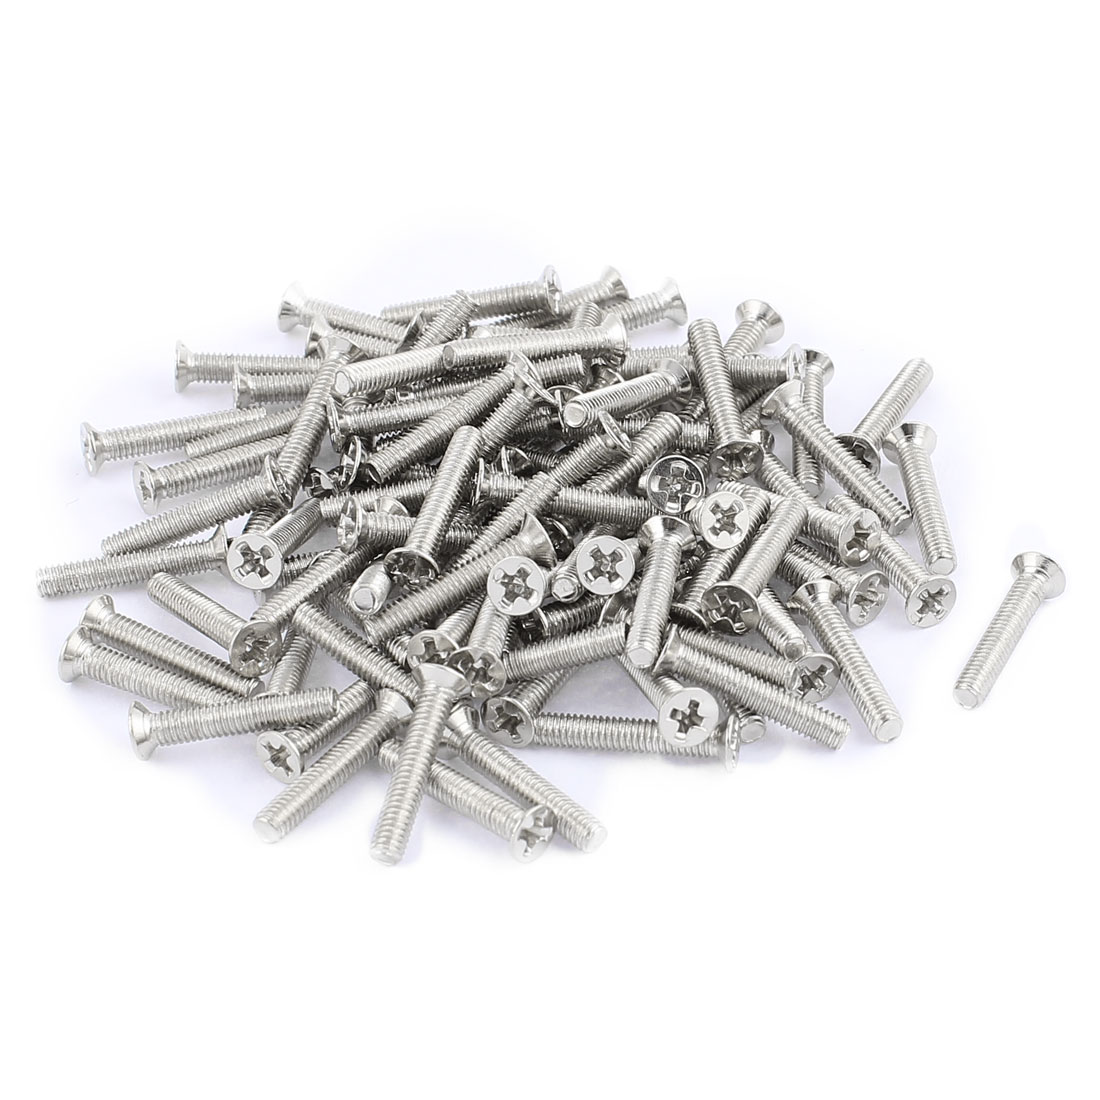 100 Pcs M2.5x14mm Stainless Steel Countersunk Flat Head Phillips Machine Screws Bolts